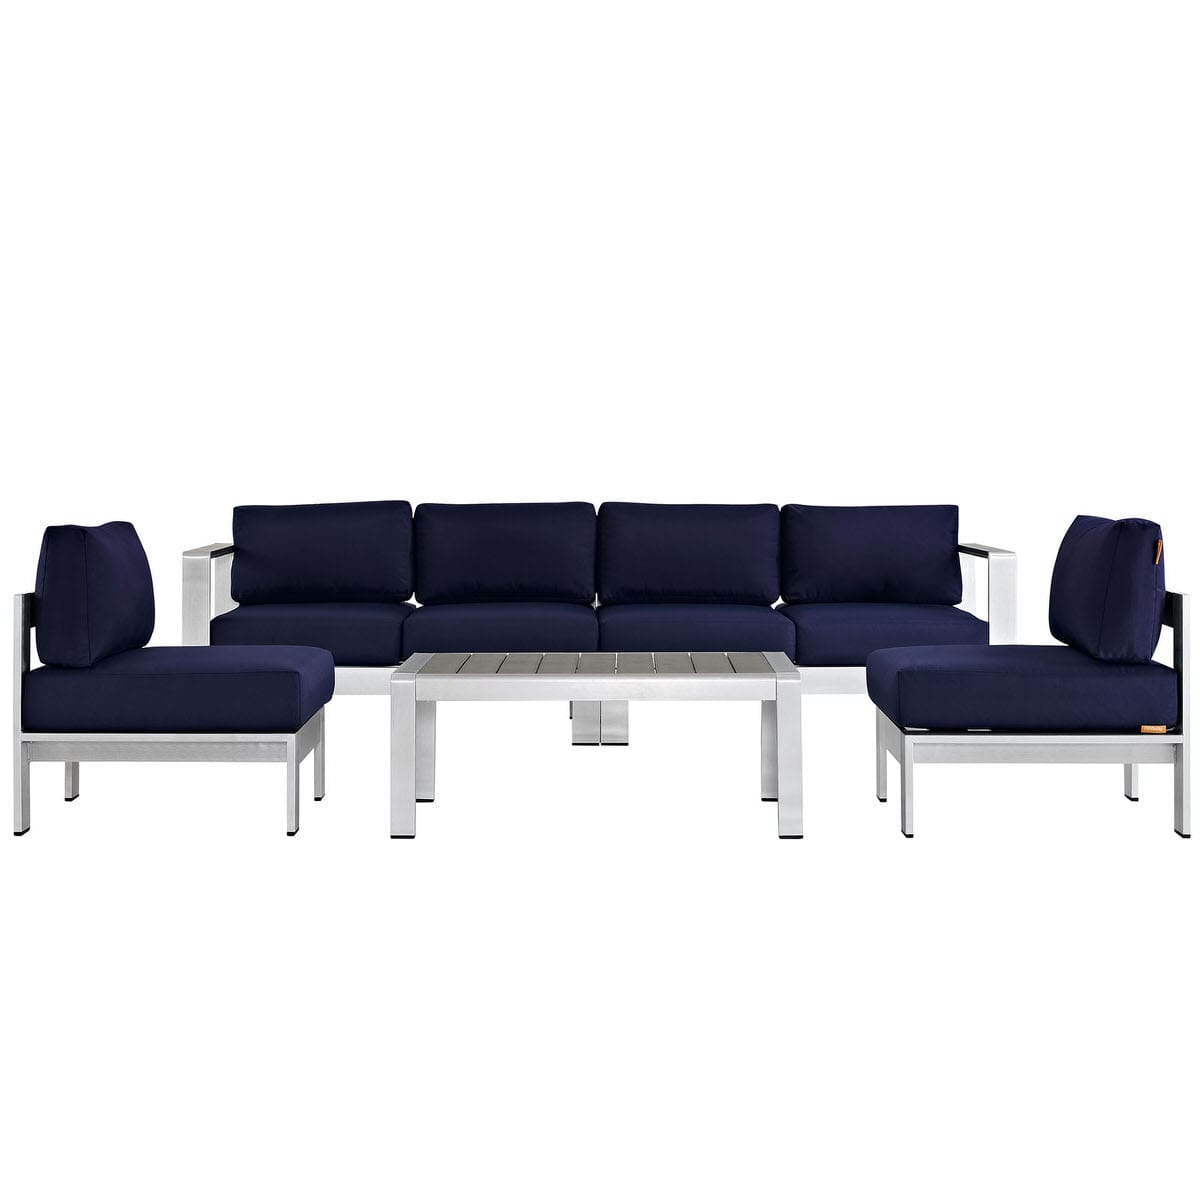 Magnificent Shore 5 Piece Outdoor Patio Aluminum Sectional Sofa Set Silver Navy By Modern Living Unemploymentrelief Wooden Chair Designs For Living Room Unemploymentrelieforg